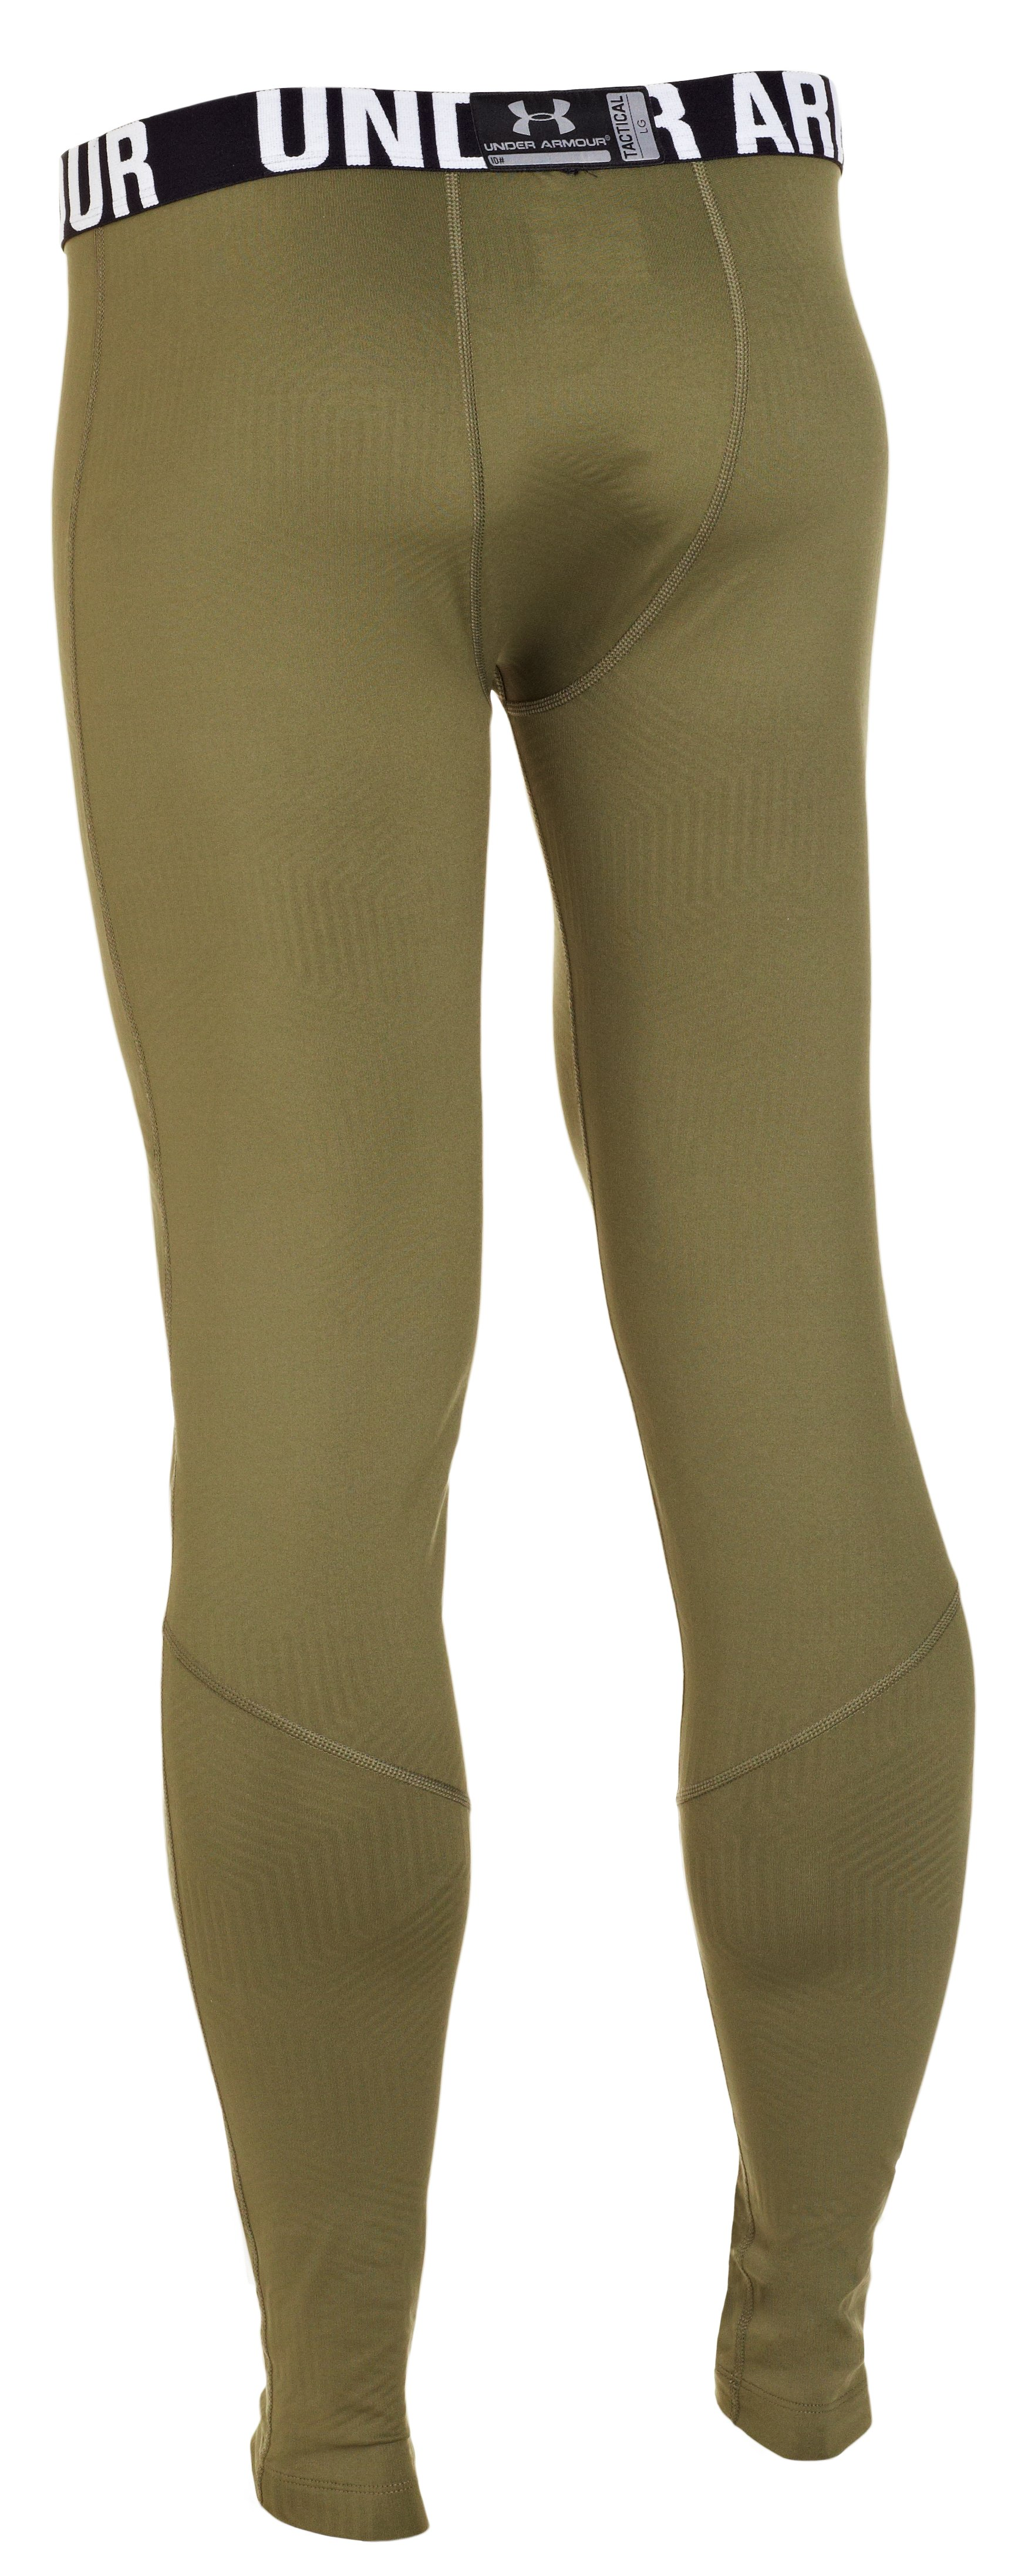 Men's ColdGear® Infrared Tactical Fitted Leggings, Marine OD Green